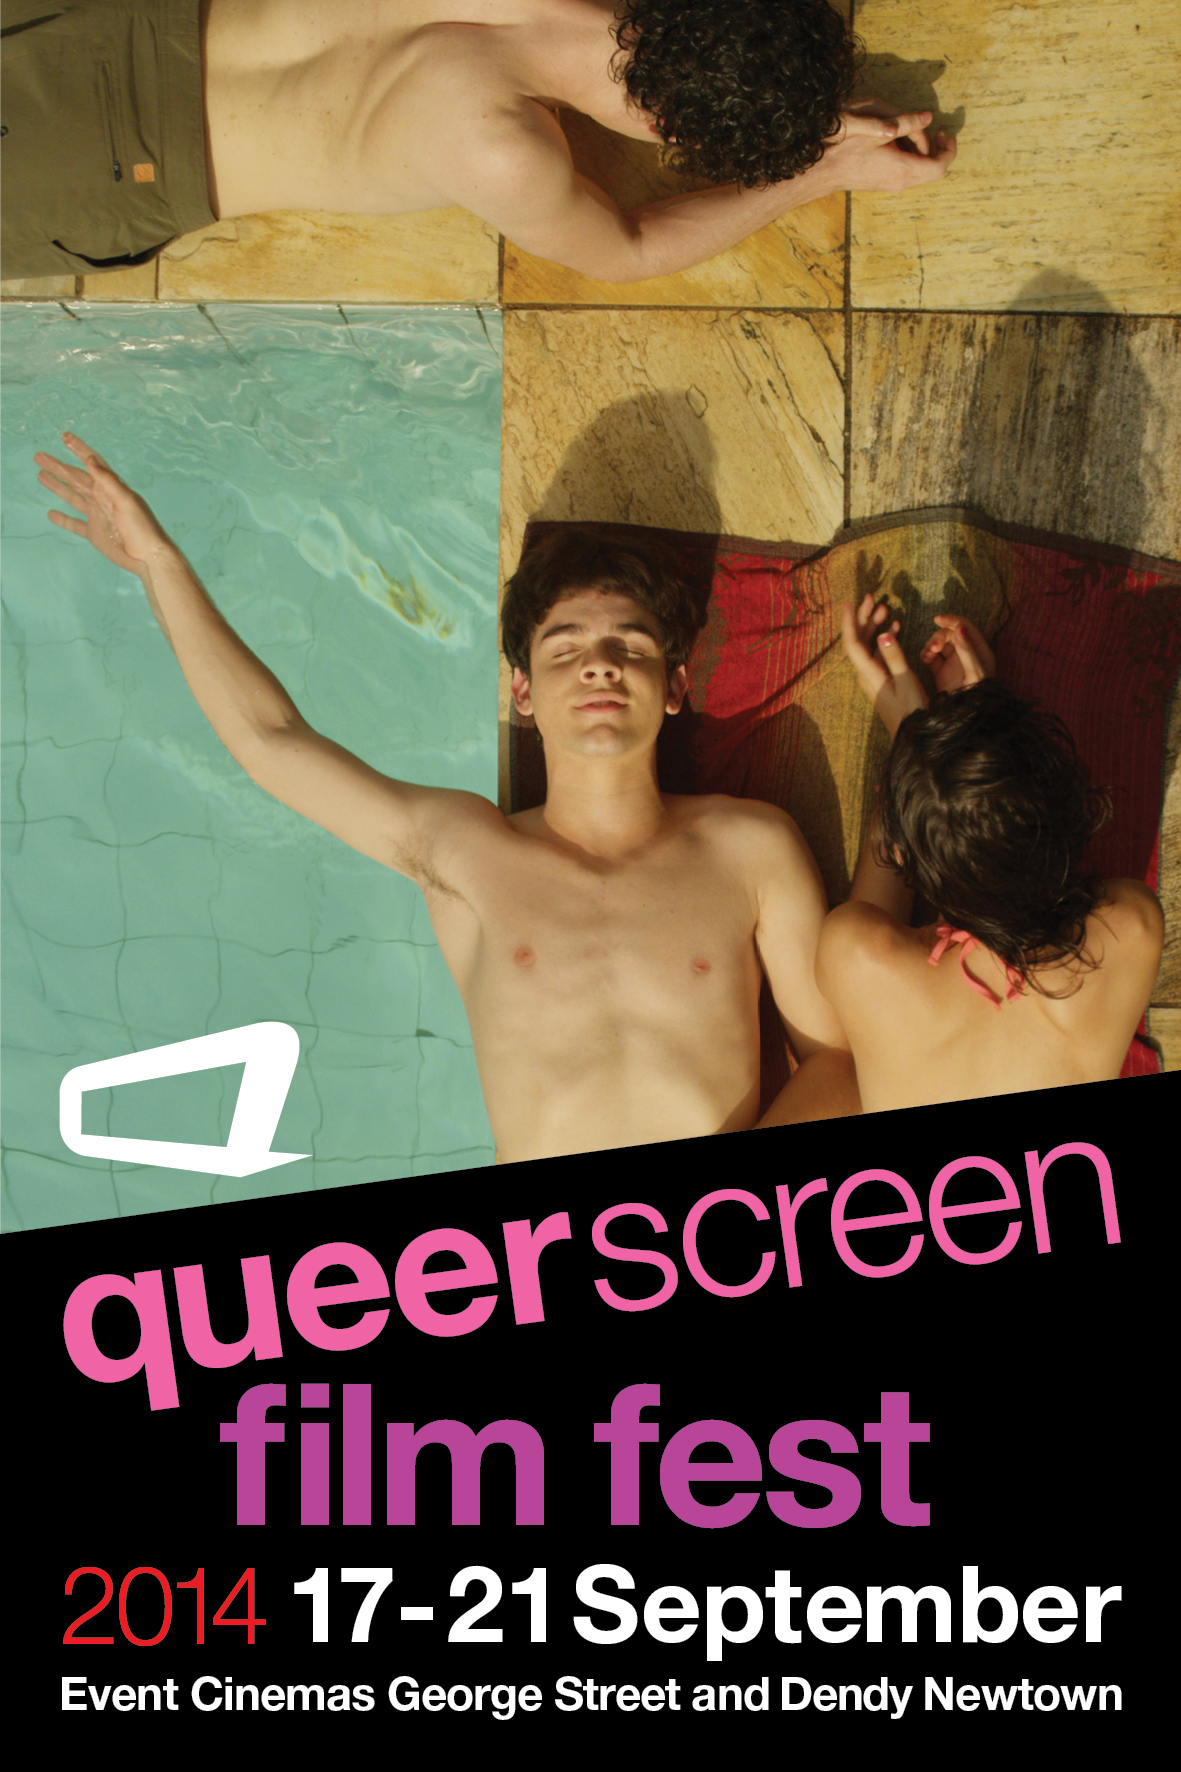 Queer Screen Film Fest 2014